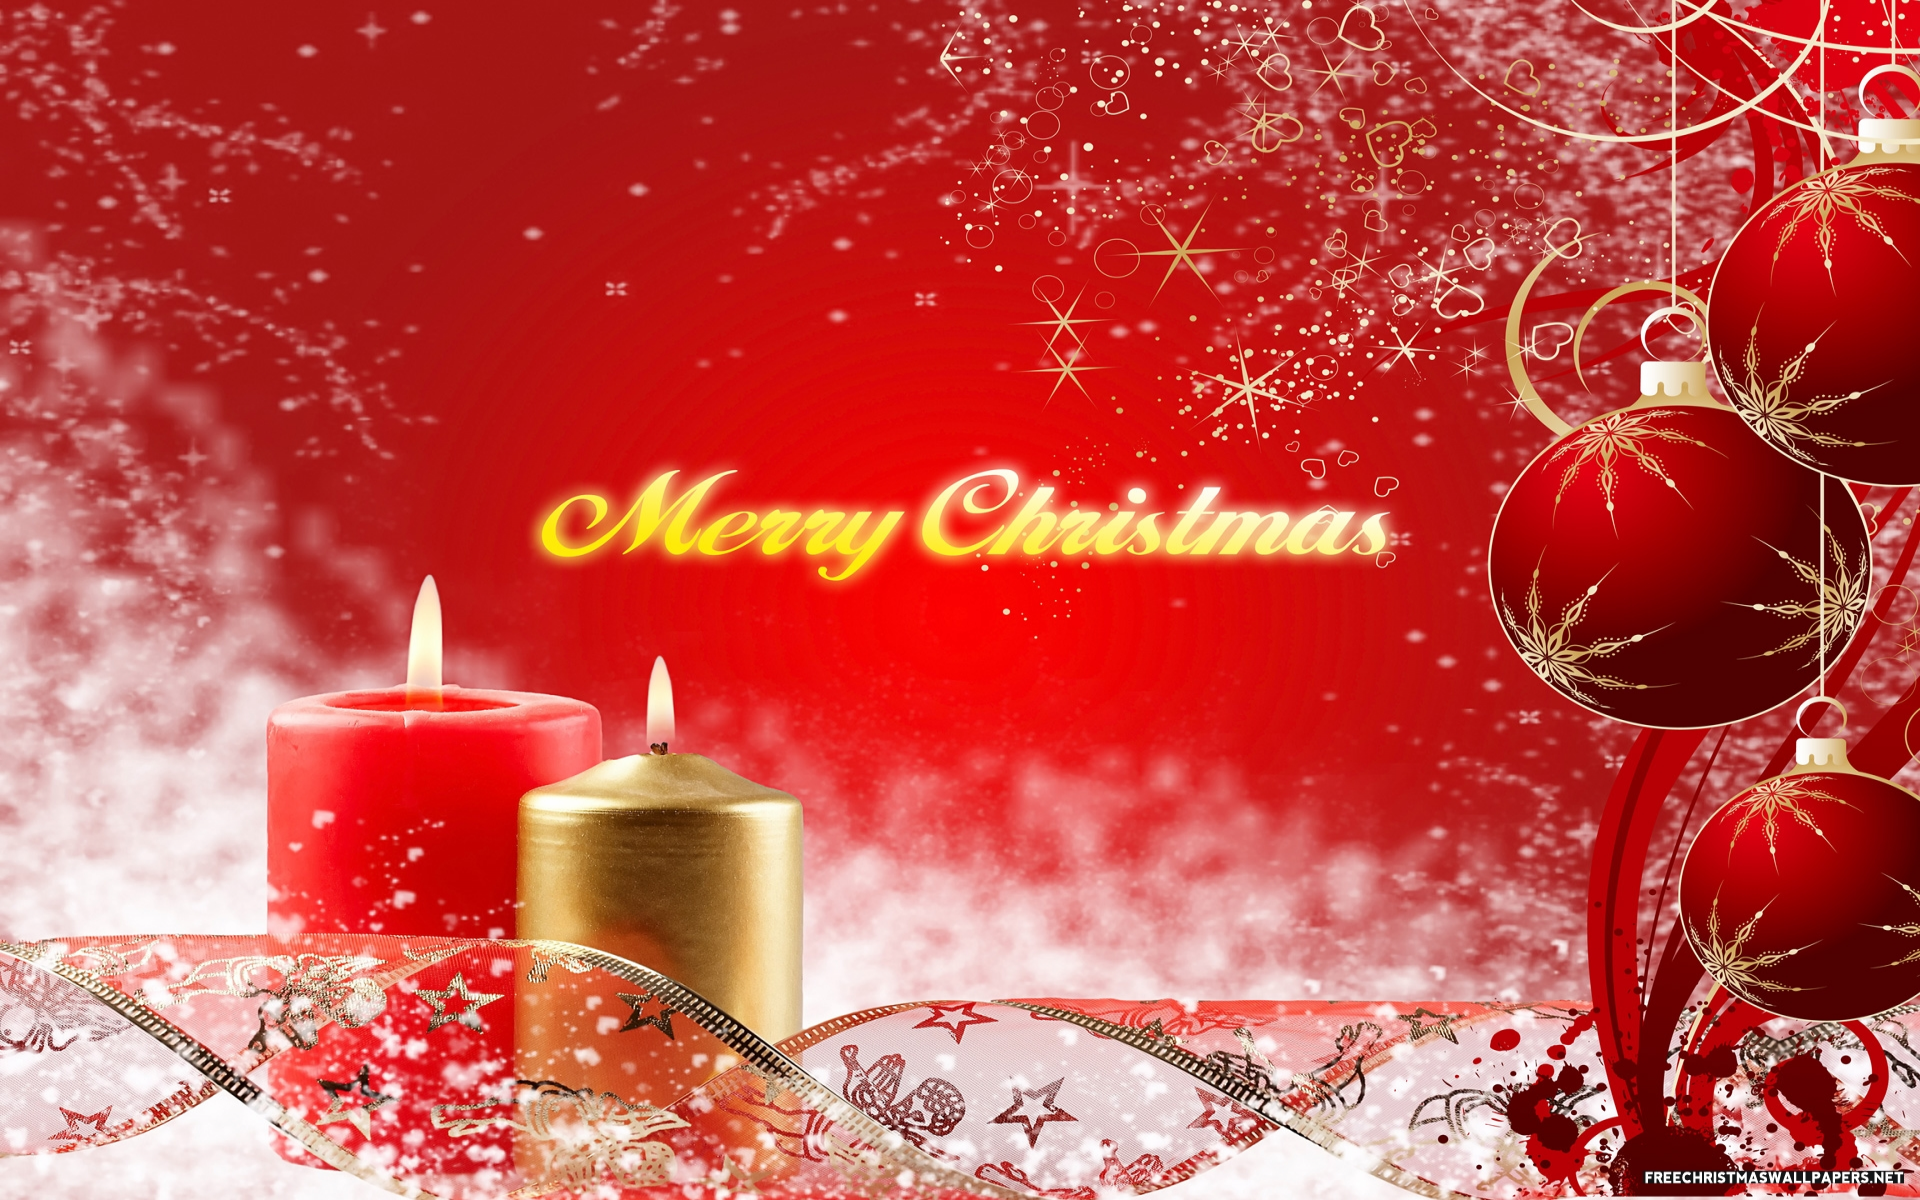 Merry Christmas Desktop Backgrounds Wallpaper